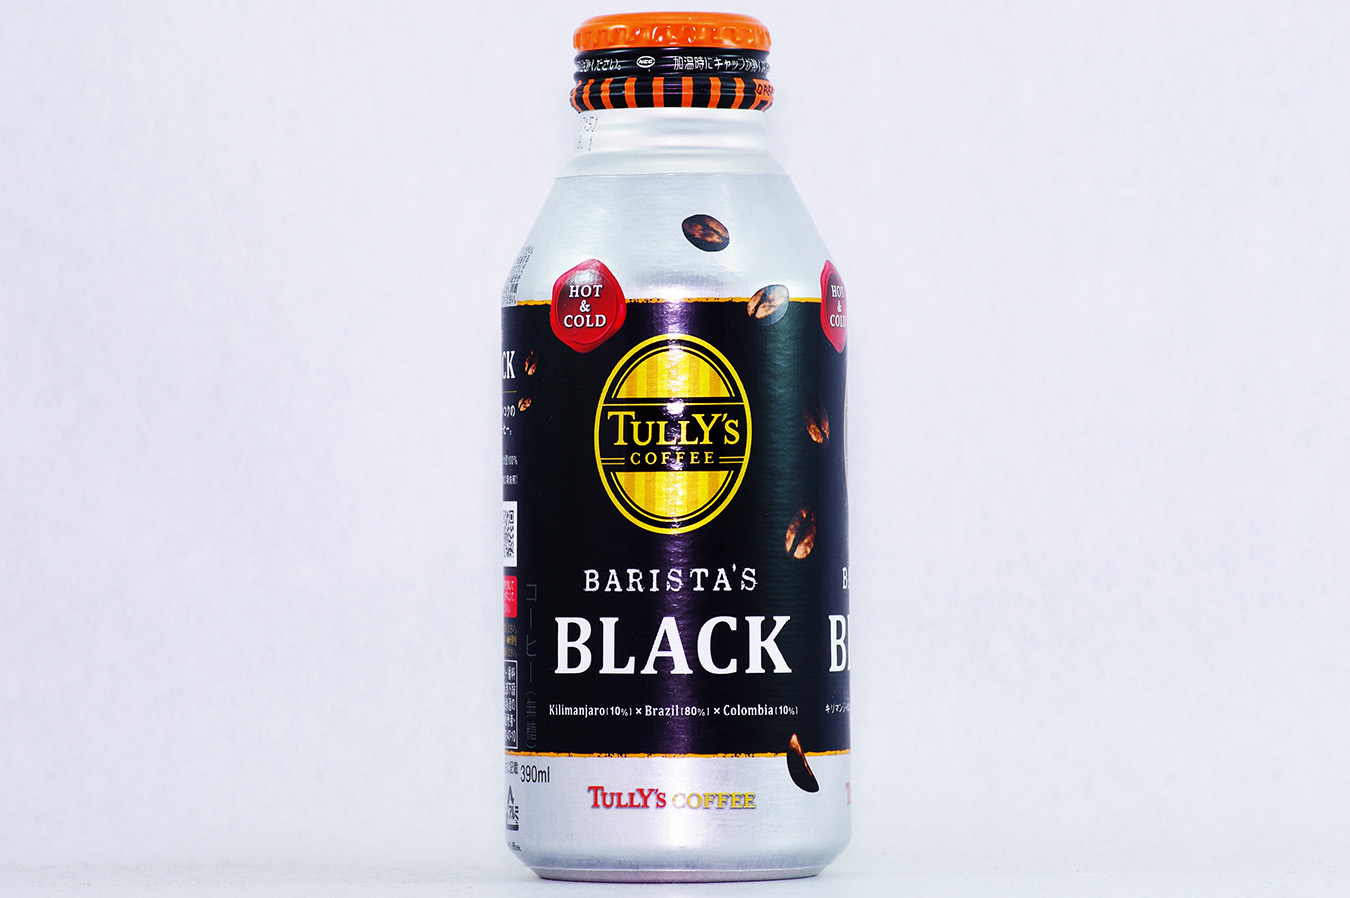 TULLY'S COFFEE BARISTA'S BLACK 390mlボトル缶 2016年9月